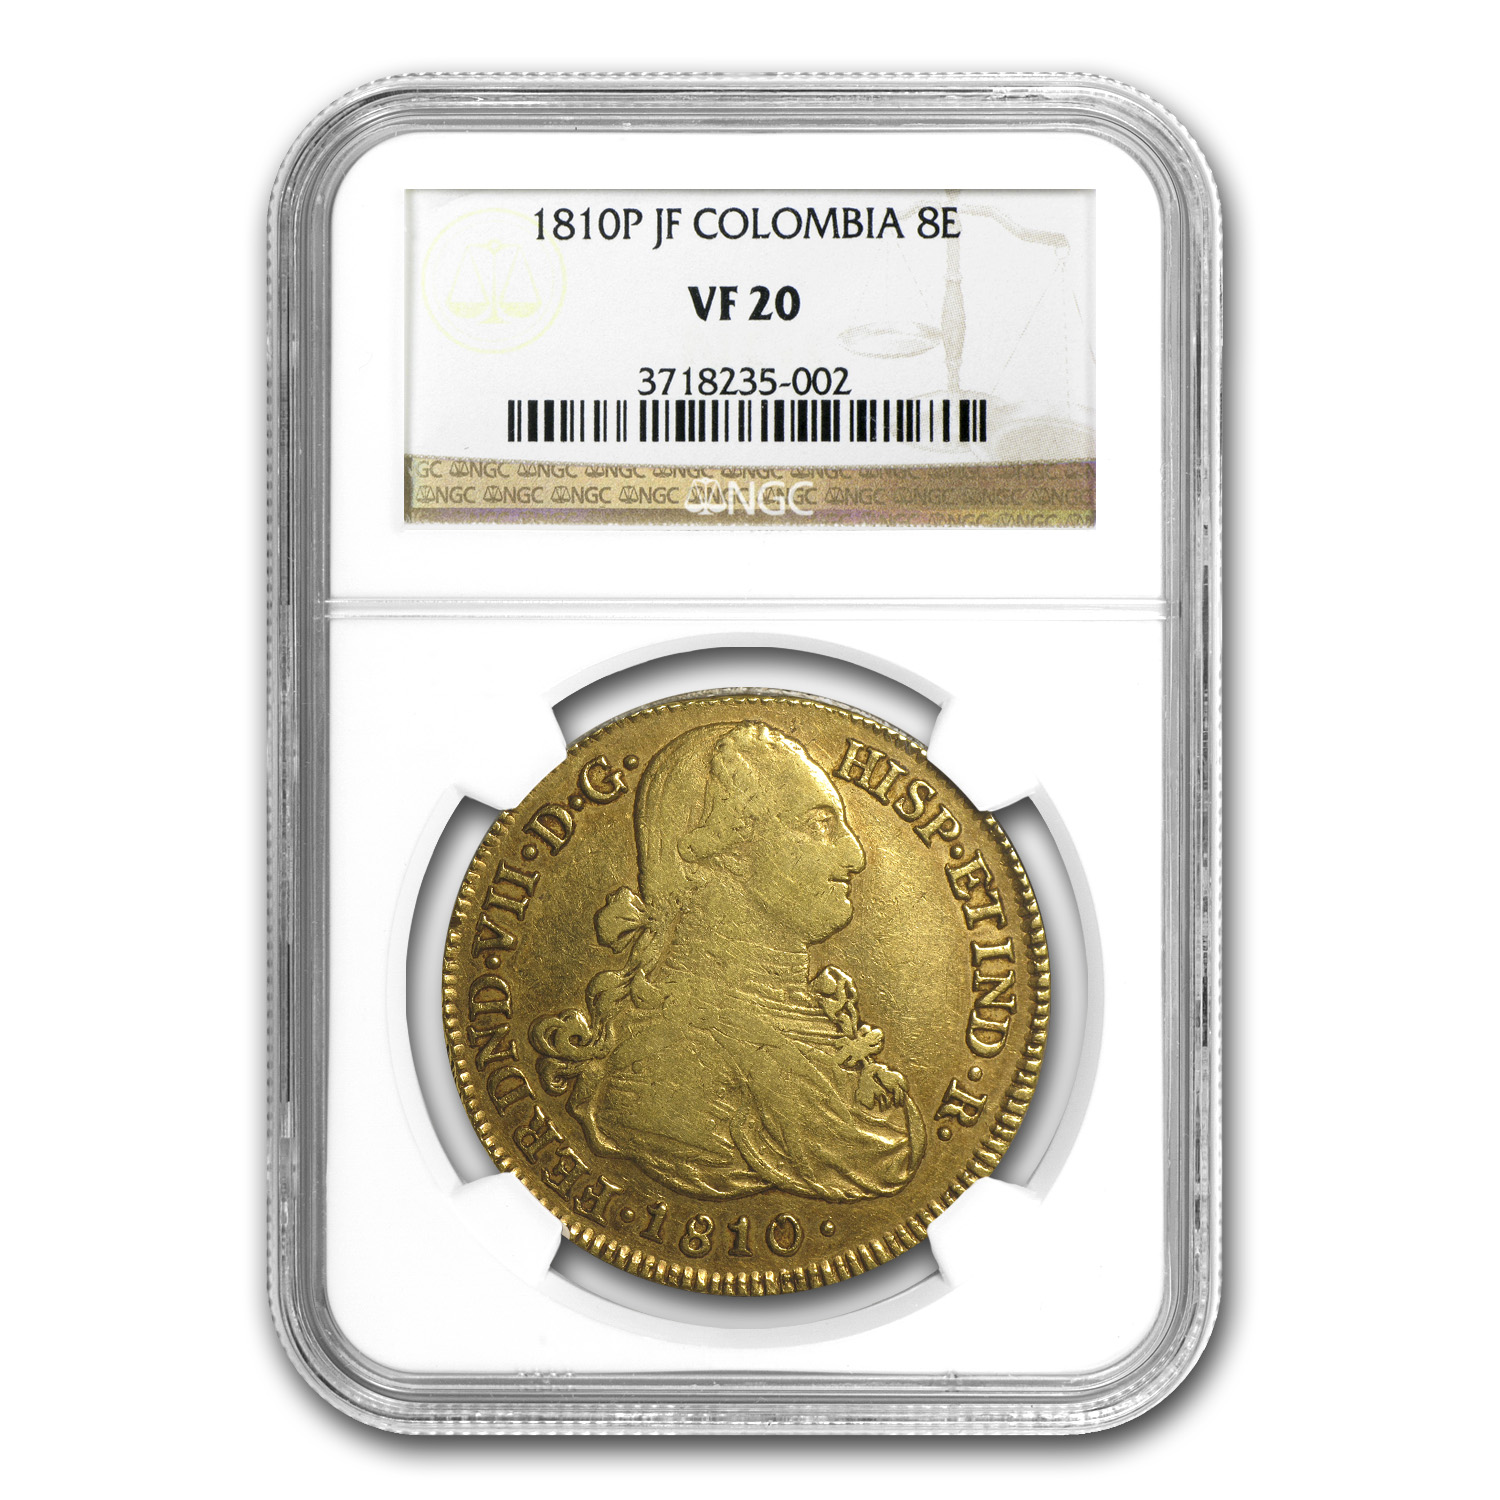 1810 P-JF Colombia Gold 8 Escudo Ferdinand VII VF-20 NGC